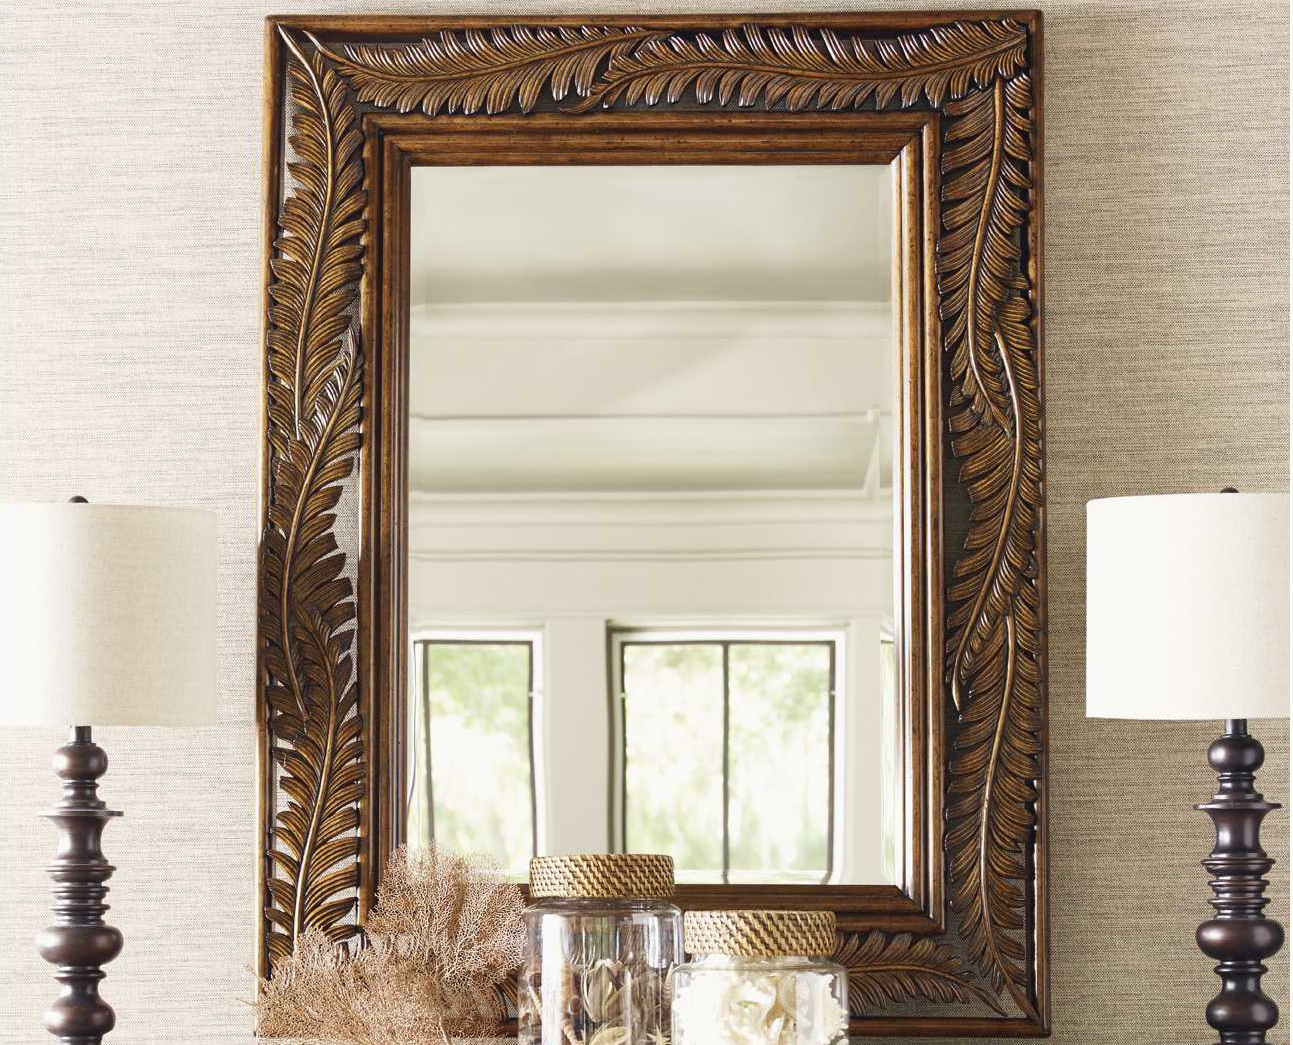 Tommy Bahama Bali Hai Wood Seabrook Landscape Dresser Mirror To593206